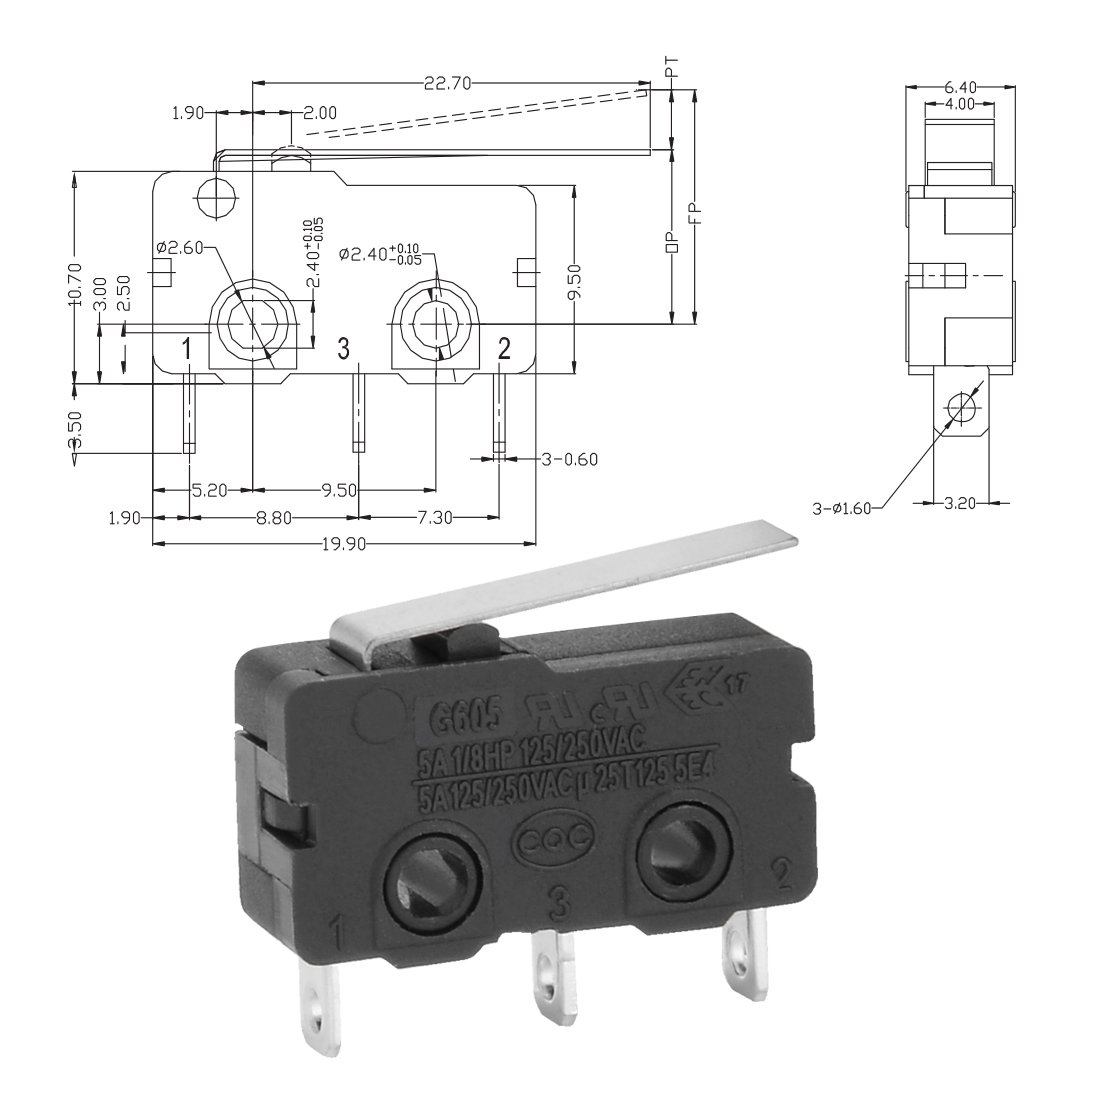 uxcell 10Pcs G605-150S01A SPDT NO+NC KW12 Straight Hinge Lever Control Mini Micro  Switch Black - - Amazon.com